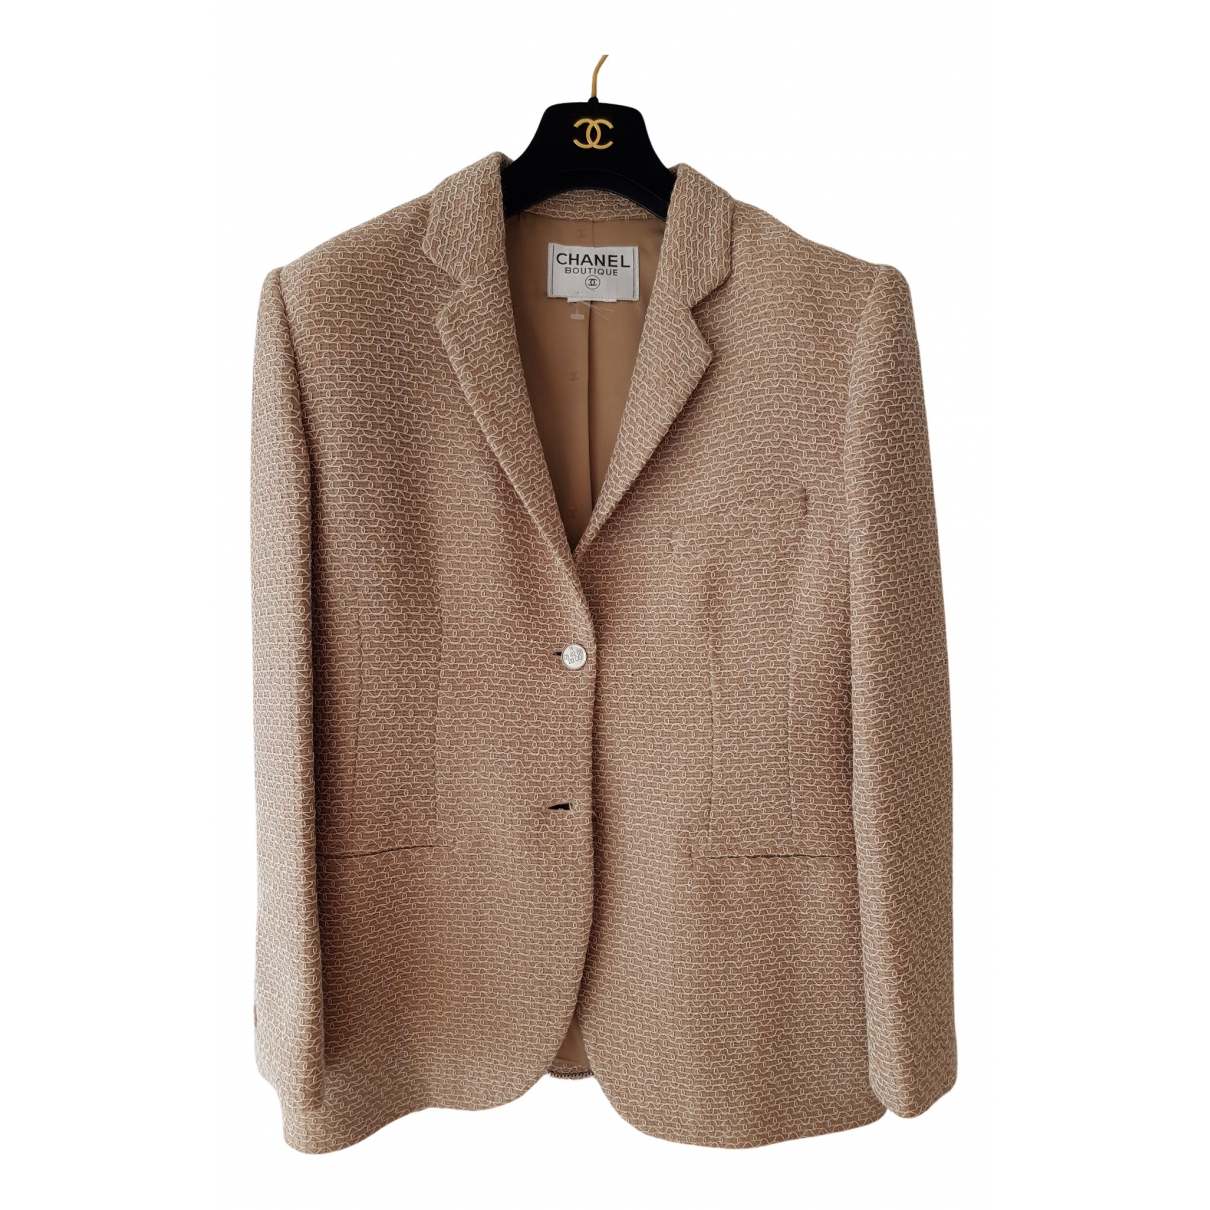 Chanel N Beige Wool jacket for Women M International